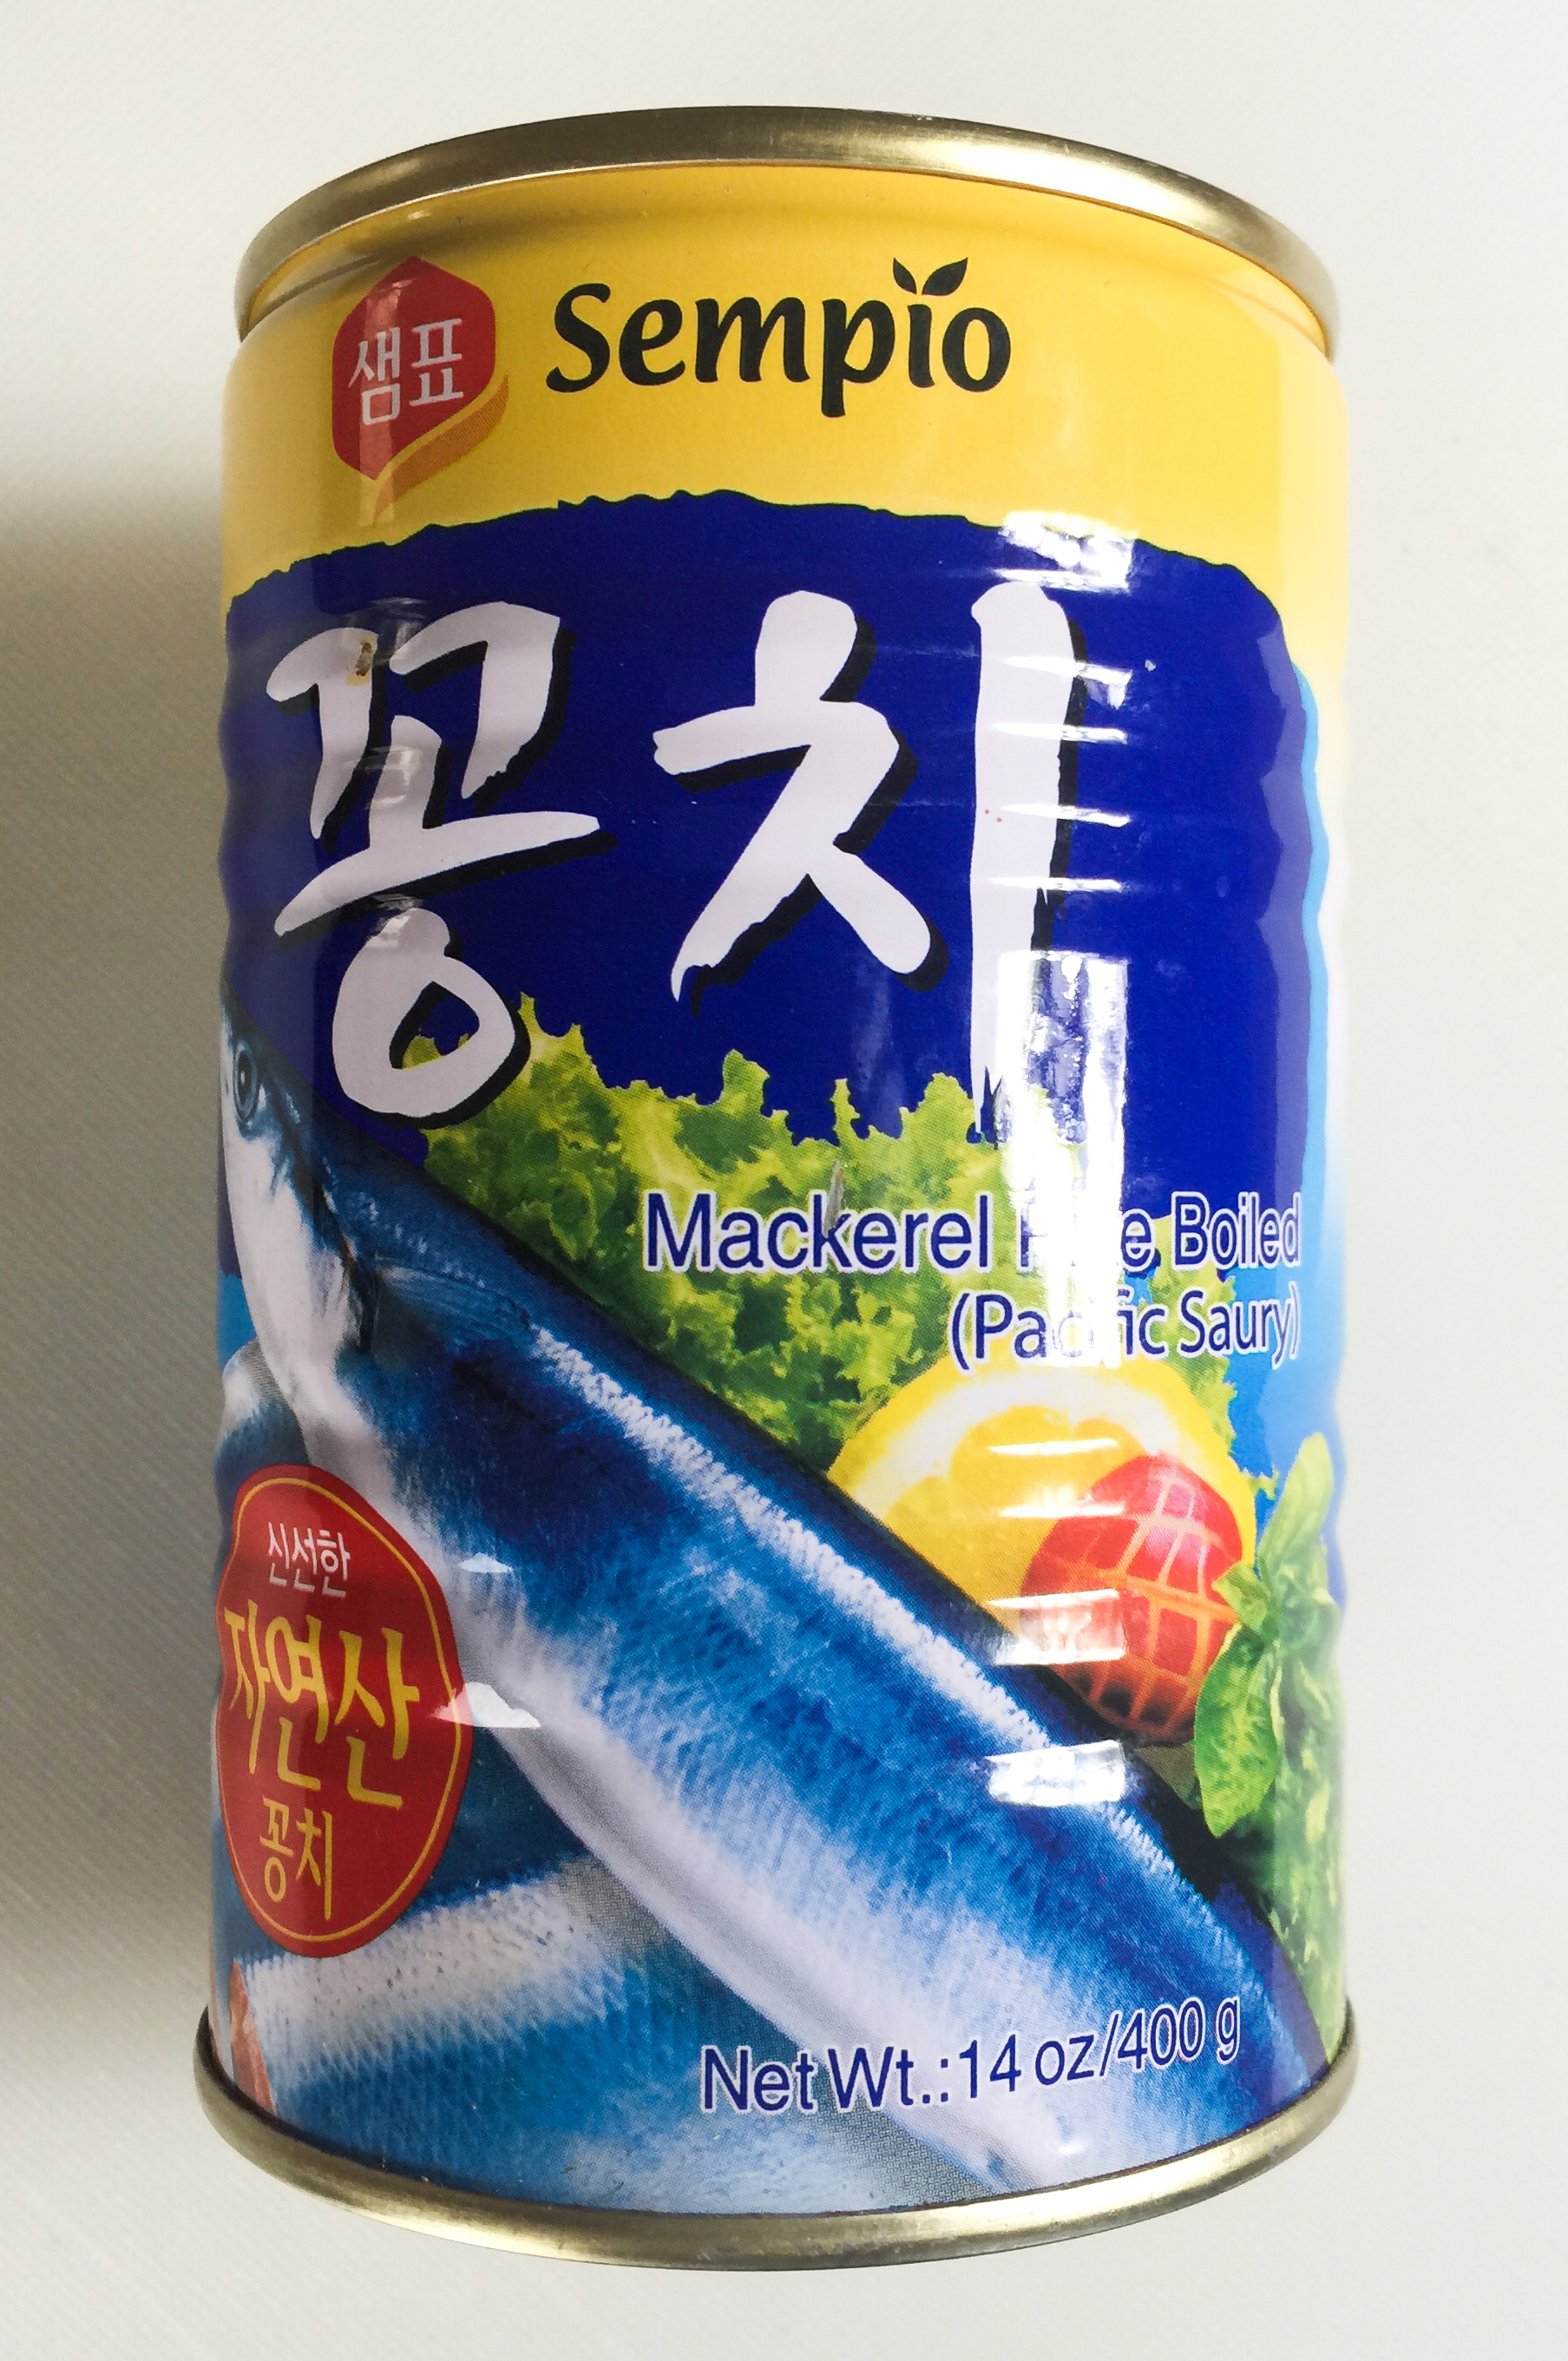 A can of Pacific saury (mackerel pike)